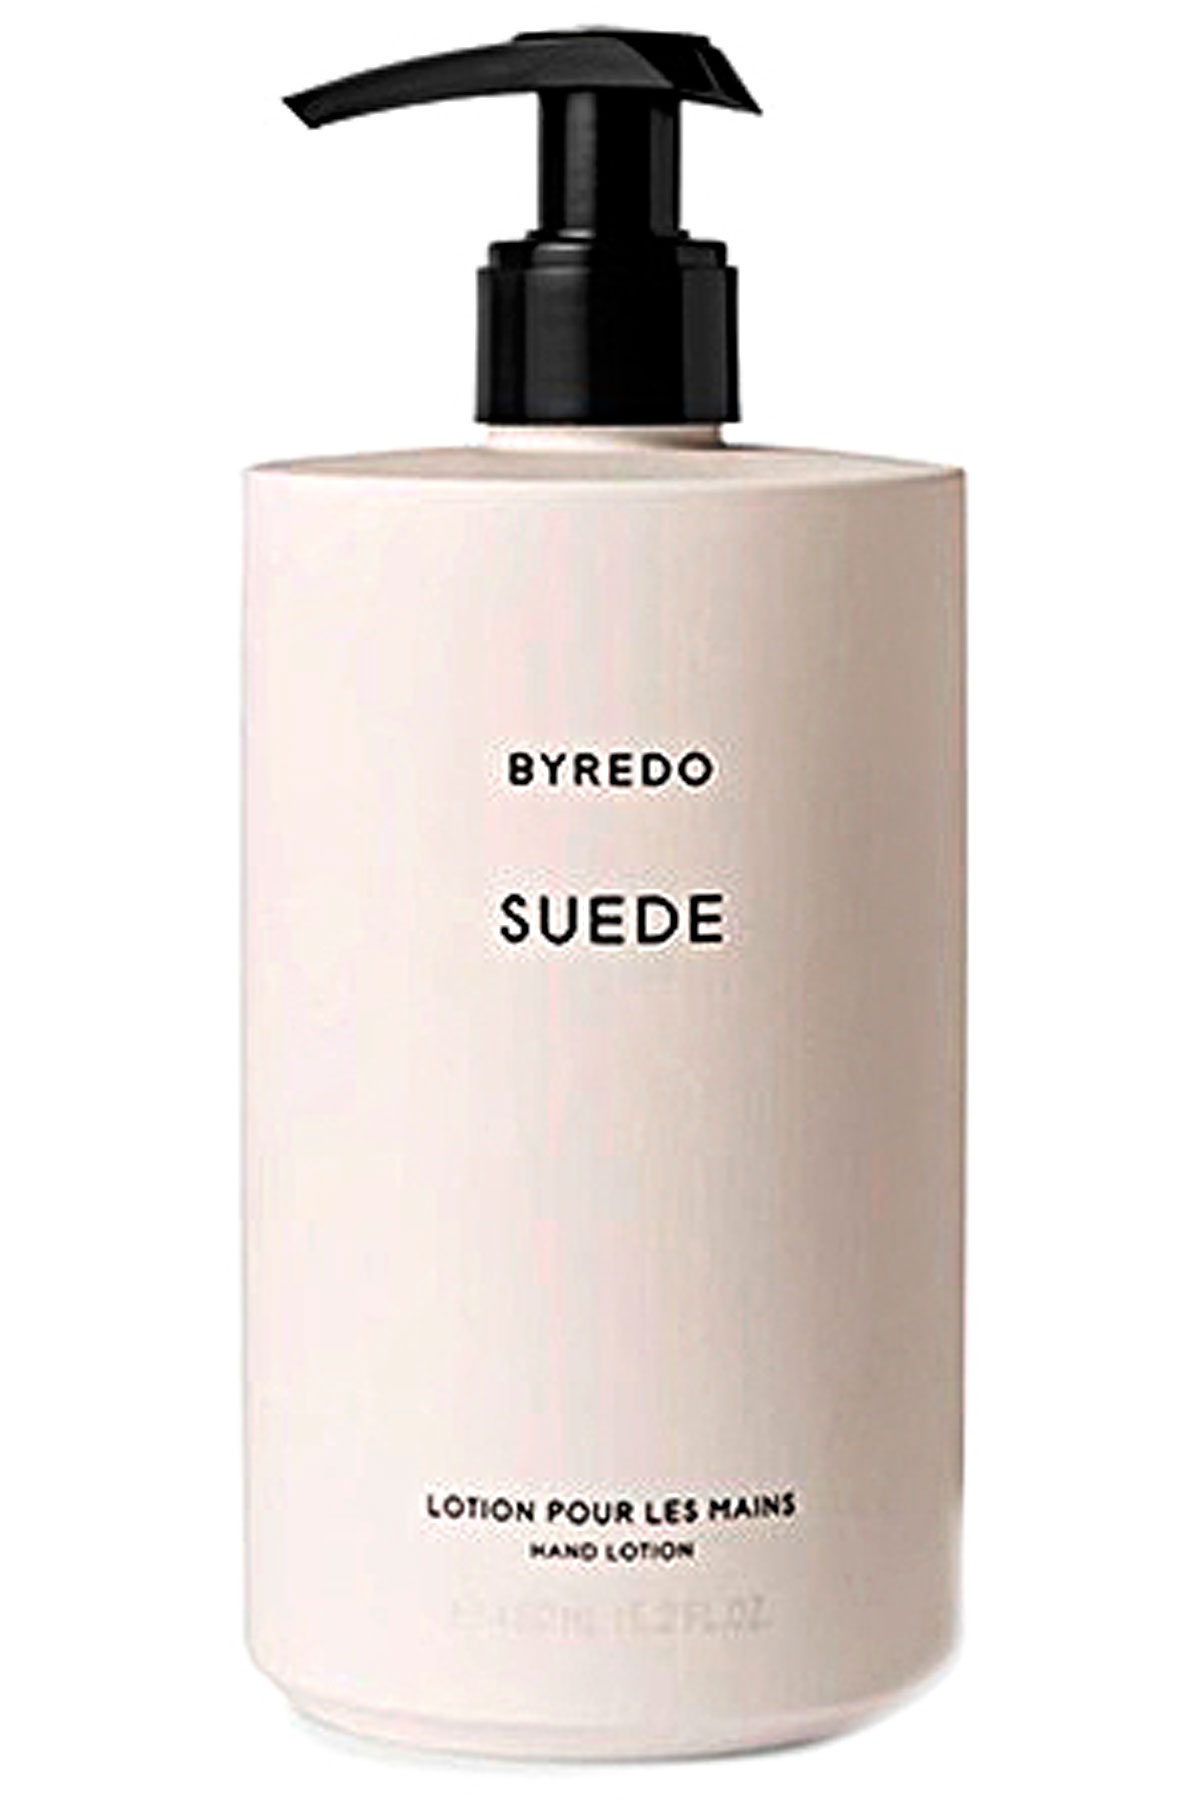 Byredo Beauty for Women, Suede - Hand Lotion - 450 Ml, 2019, 450 ml